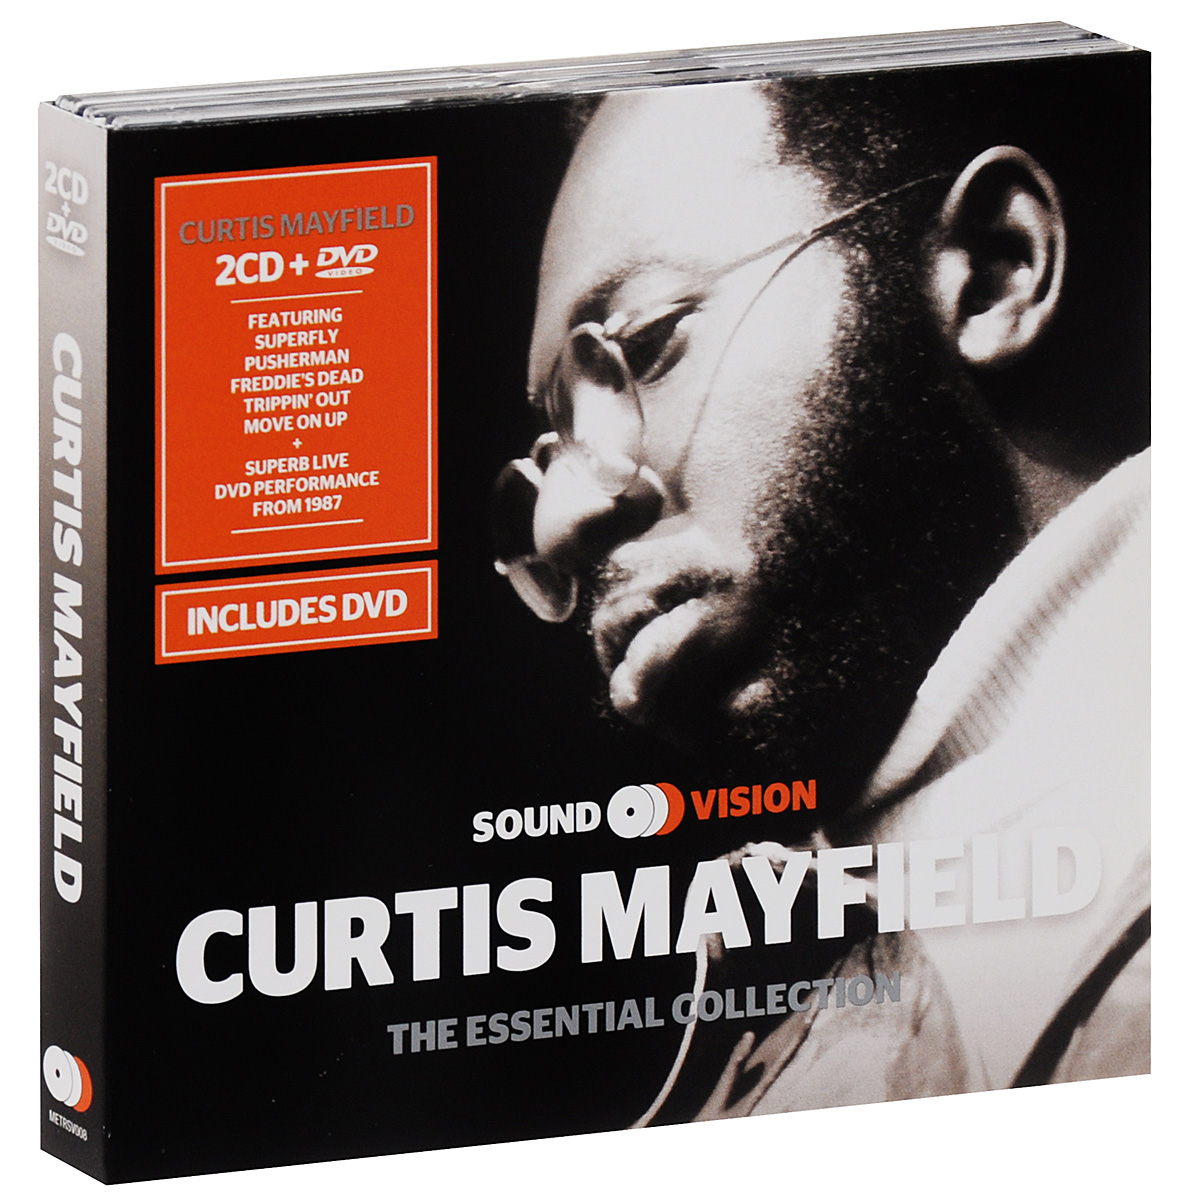 Кертис Мэйфилд Curtis Mayfield. The Essential Collection (2 CD + DVD) the classic 90s collection cd